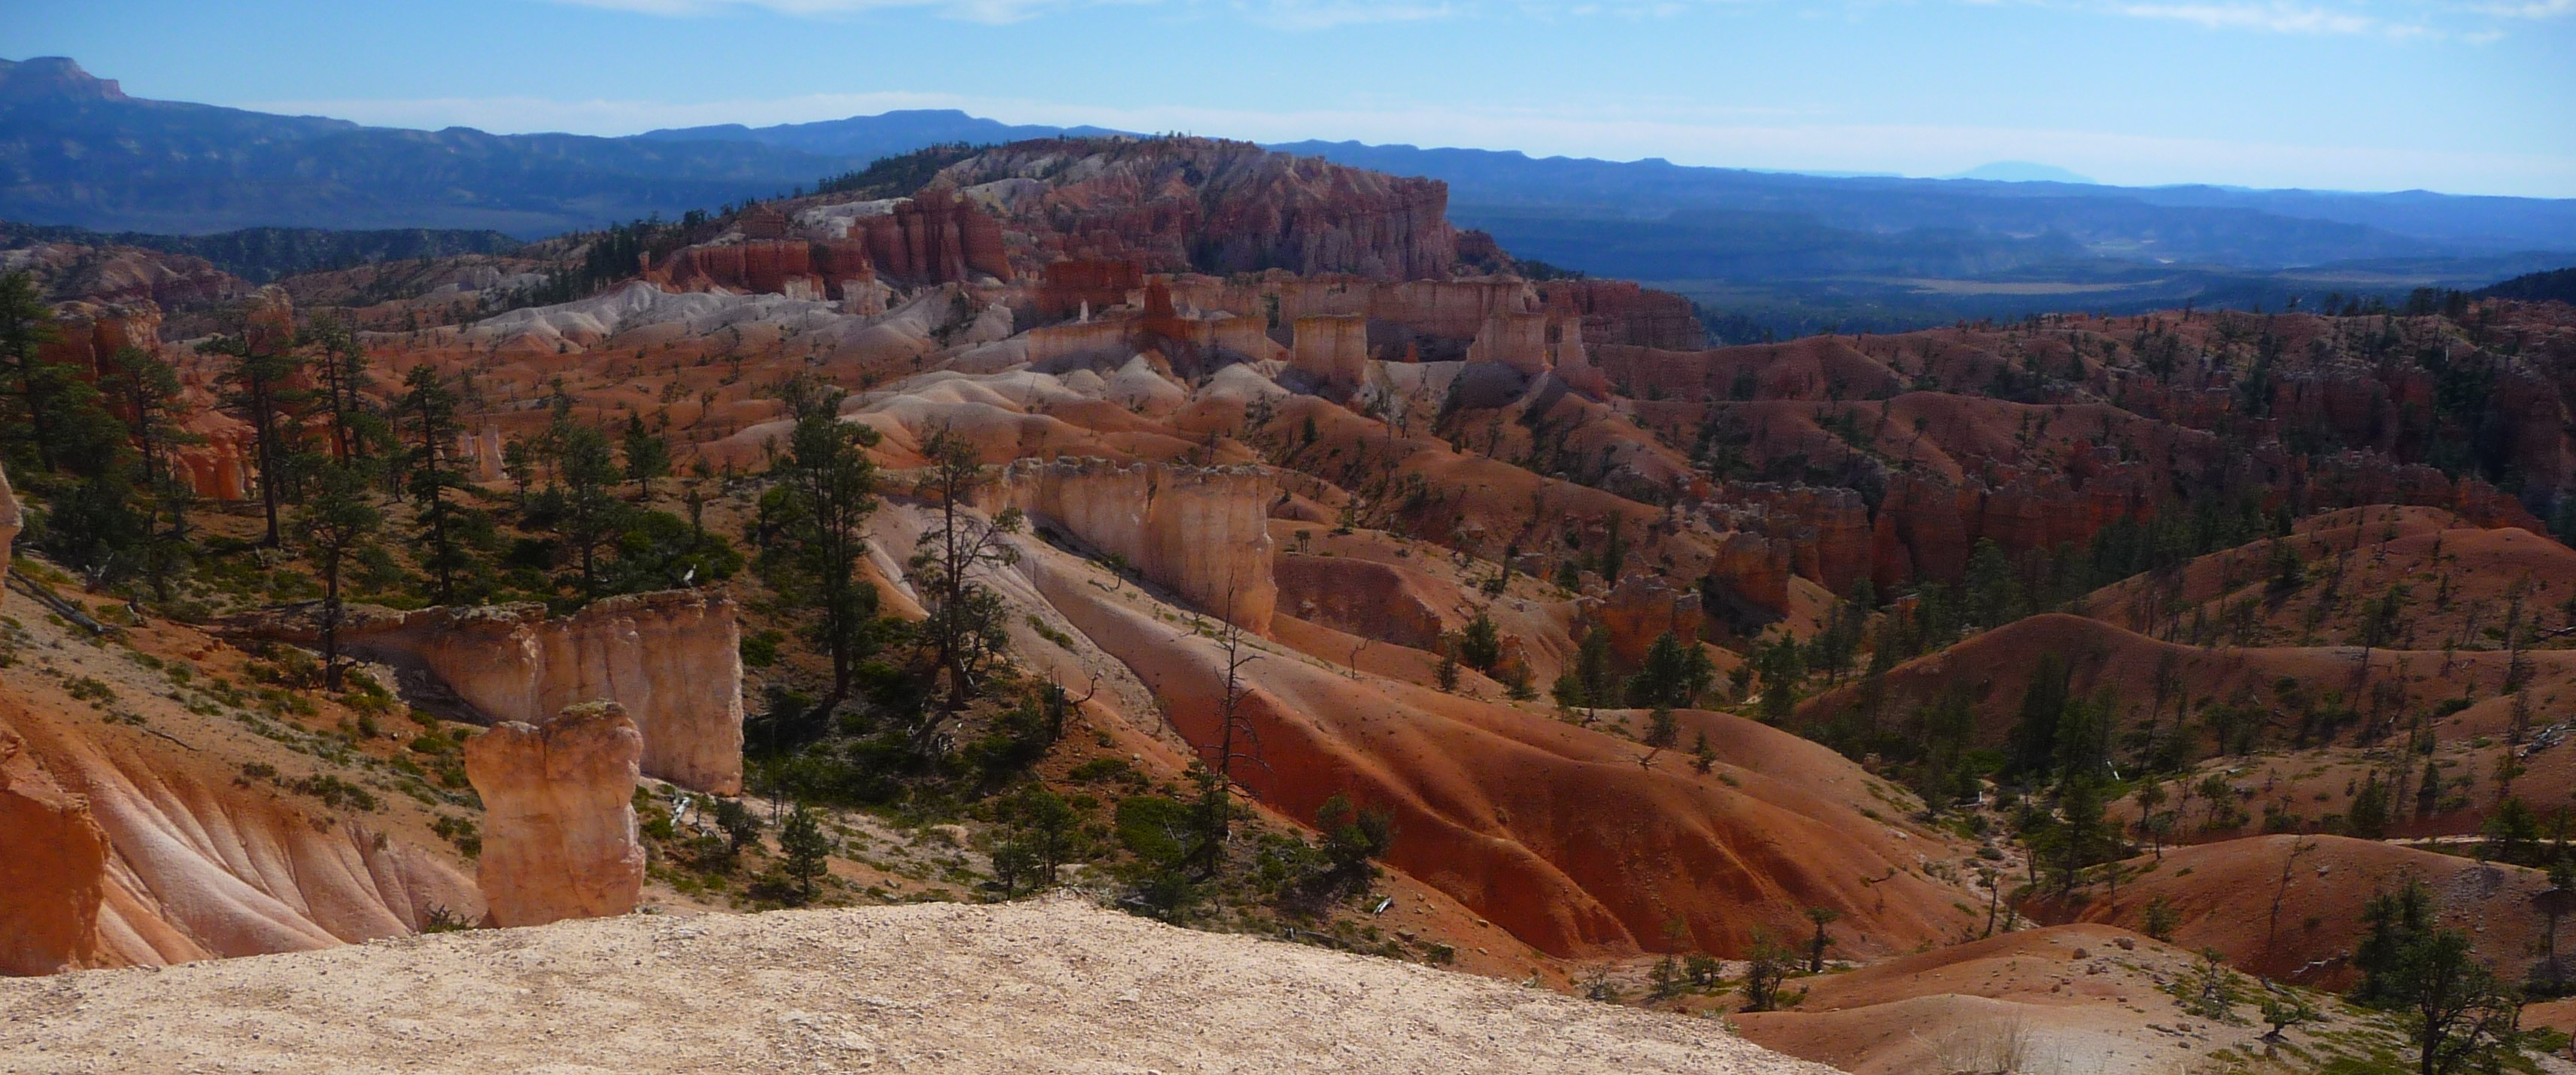 Bryce Canyon_Queen's Garden Trail_Downhill_Panorama